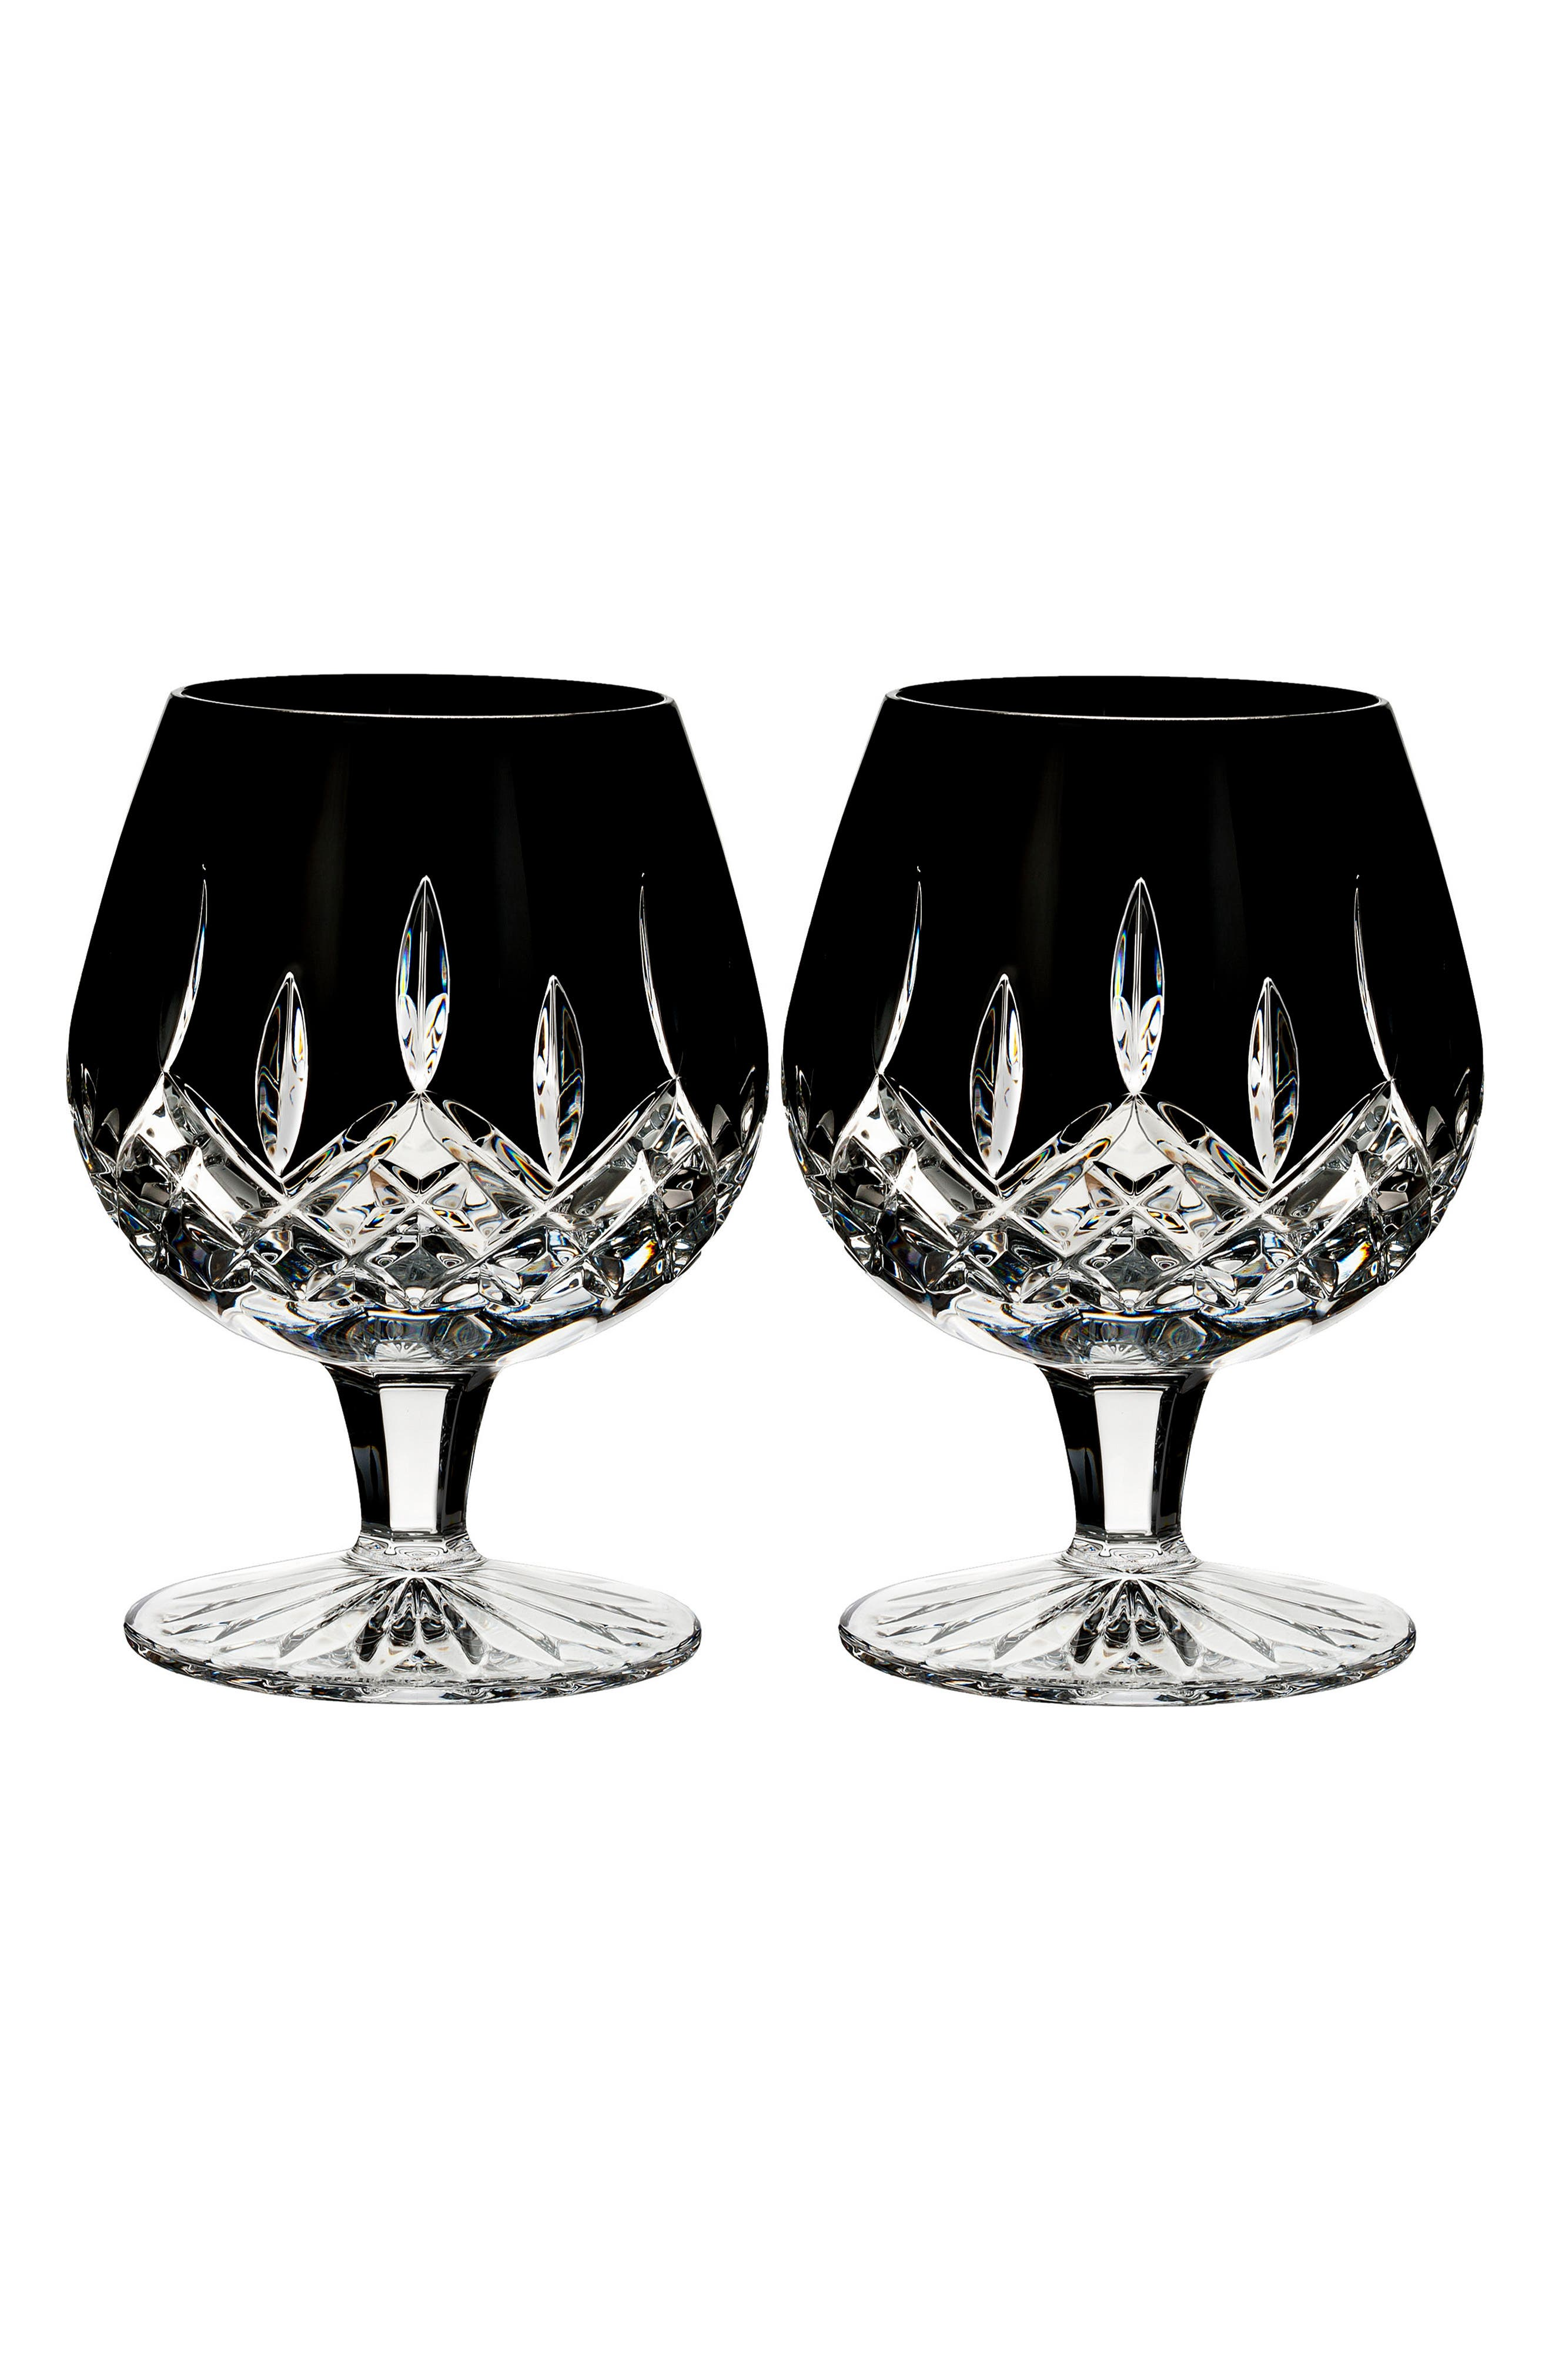 Alternate Image 1 Selected - Waterford Lismore Diamond Set of 2 Black Lead Crystal Brandy Glasses